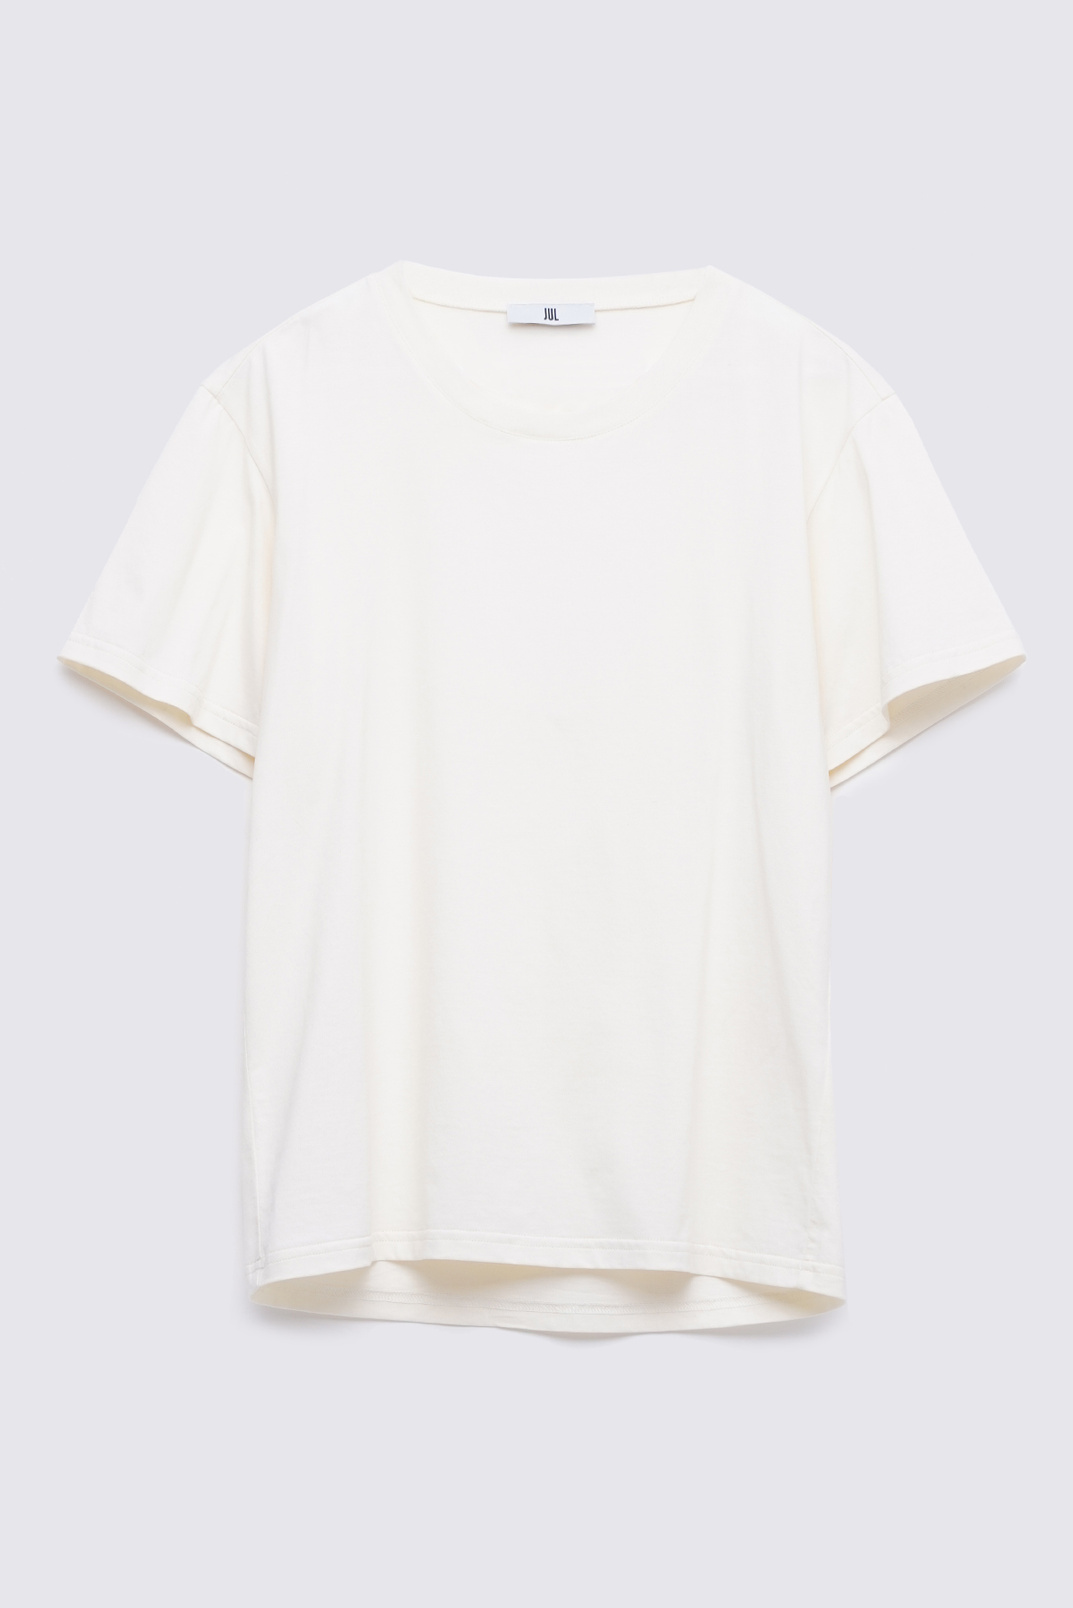 T-shirt with a neckline on the back, Milky, S